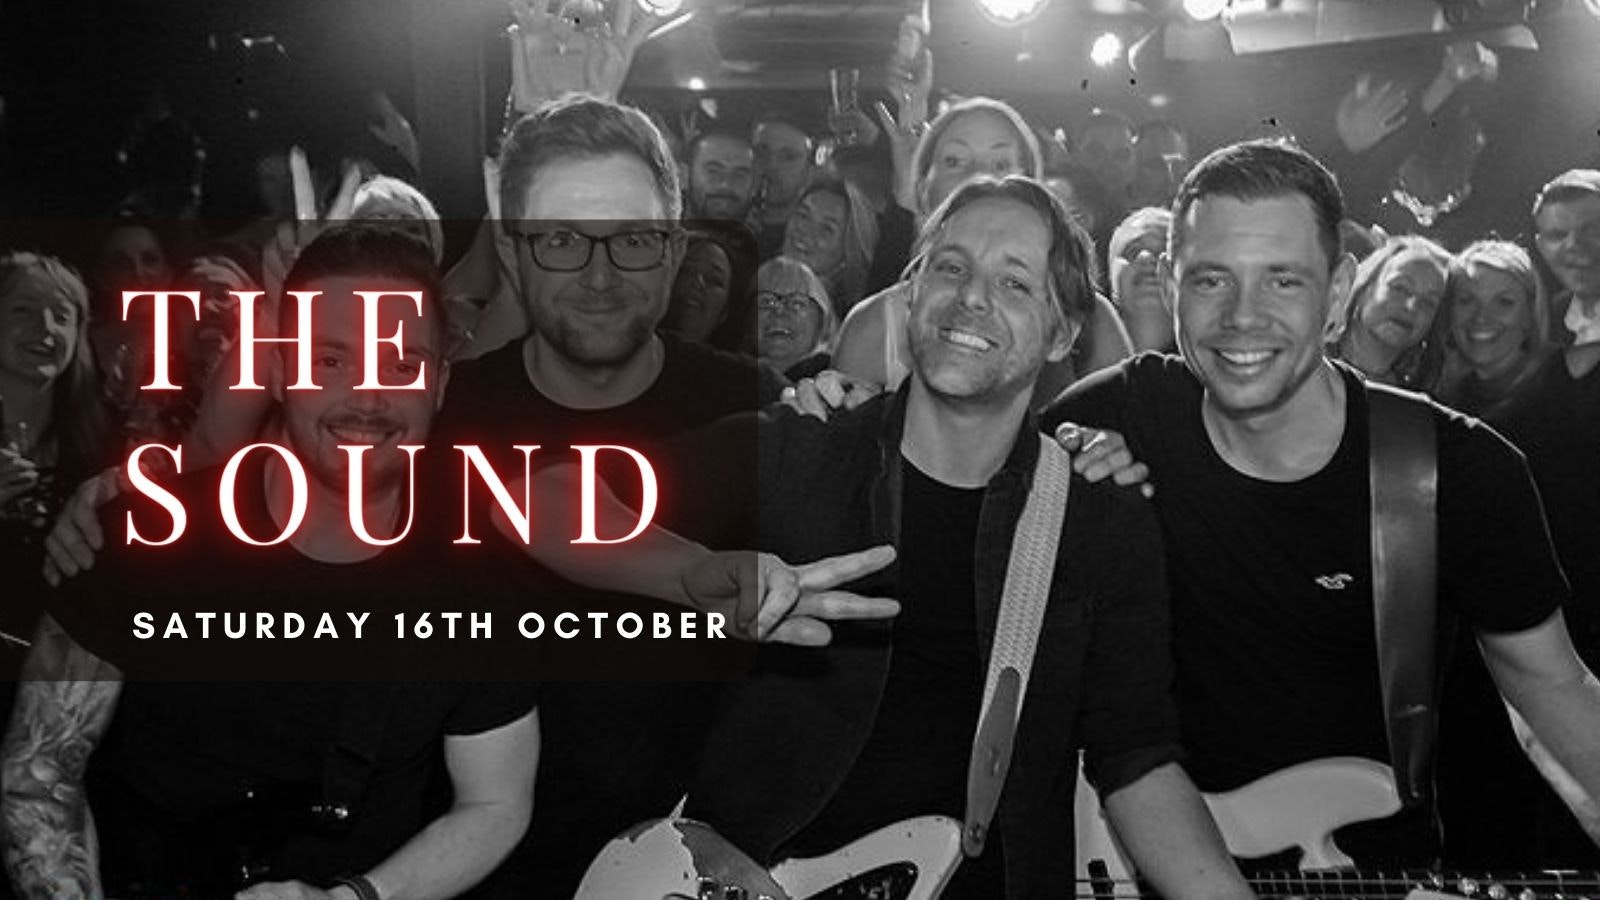 THE SOUND | Plymouth, Annabel's Cabaret & Discotheque